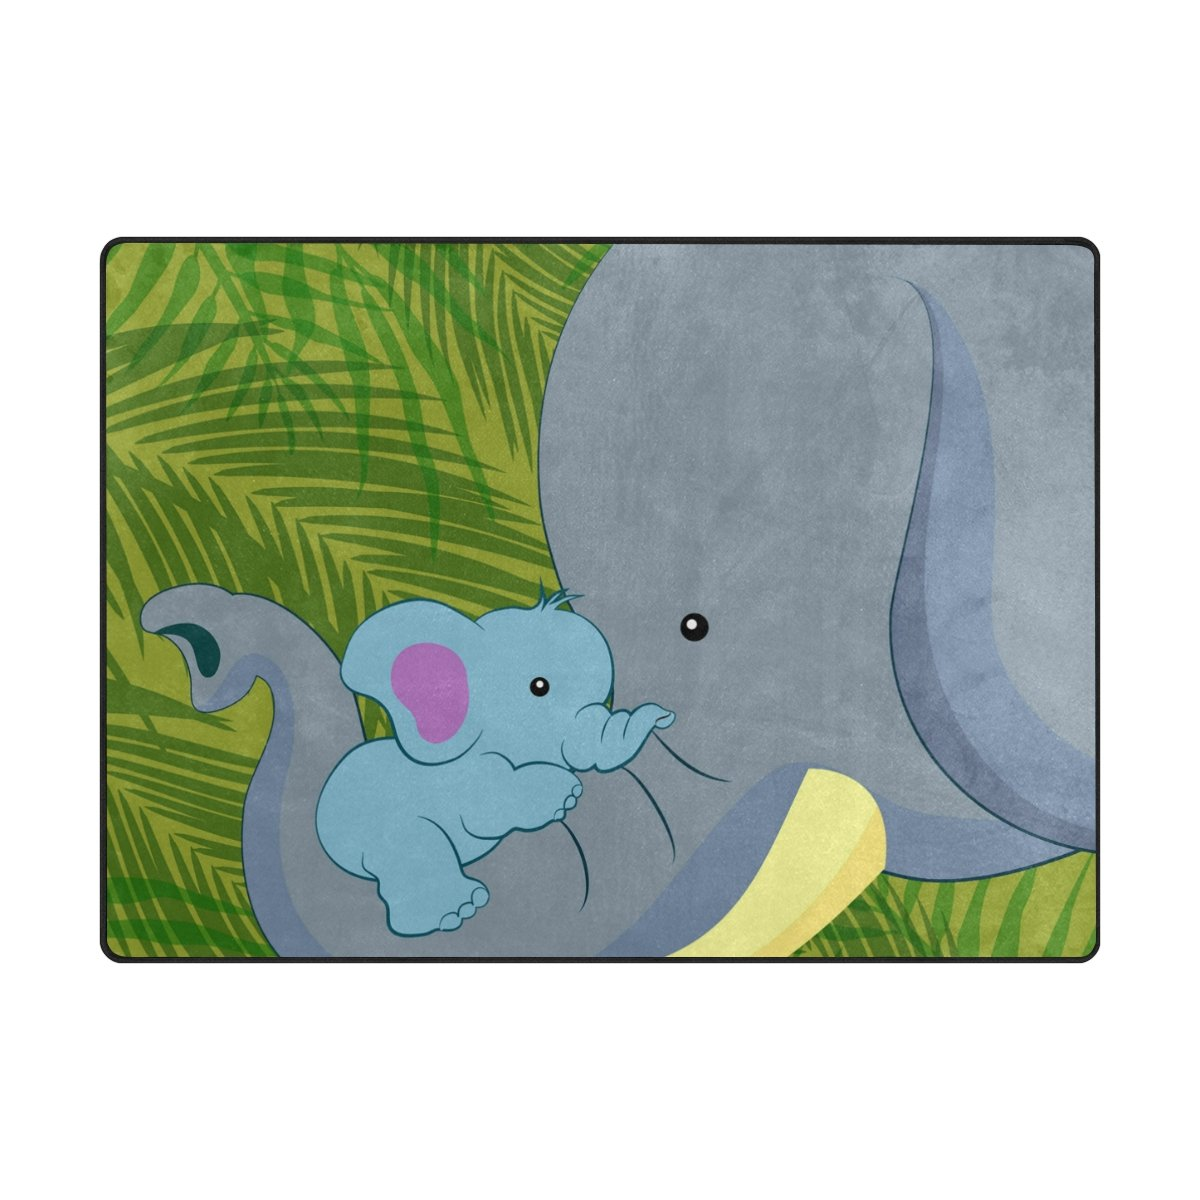 Vantaso Soft Foam Nursery Rugs Cute Baby Elephant With Mother Non Slip Play Mats for Kids Boys Girls Playing Room Living Room 63x48 inch